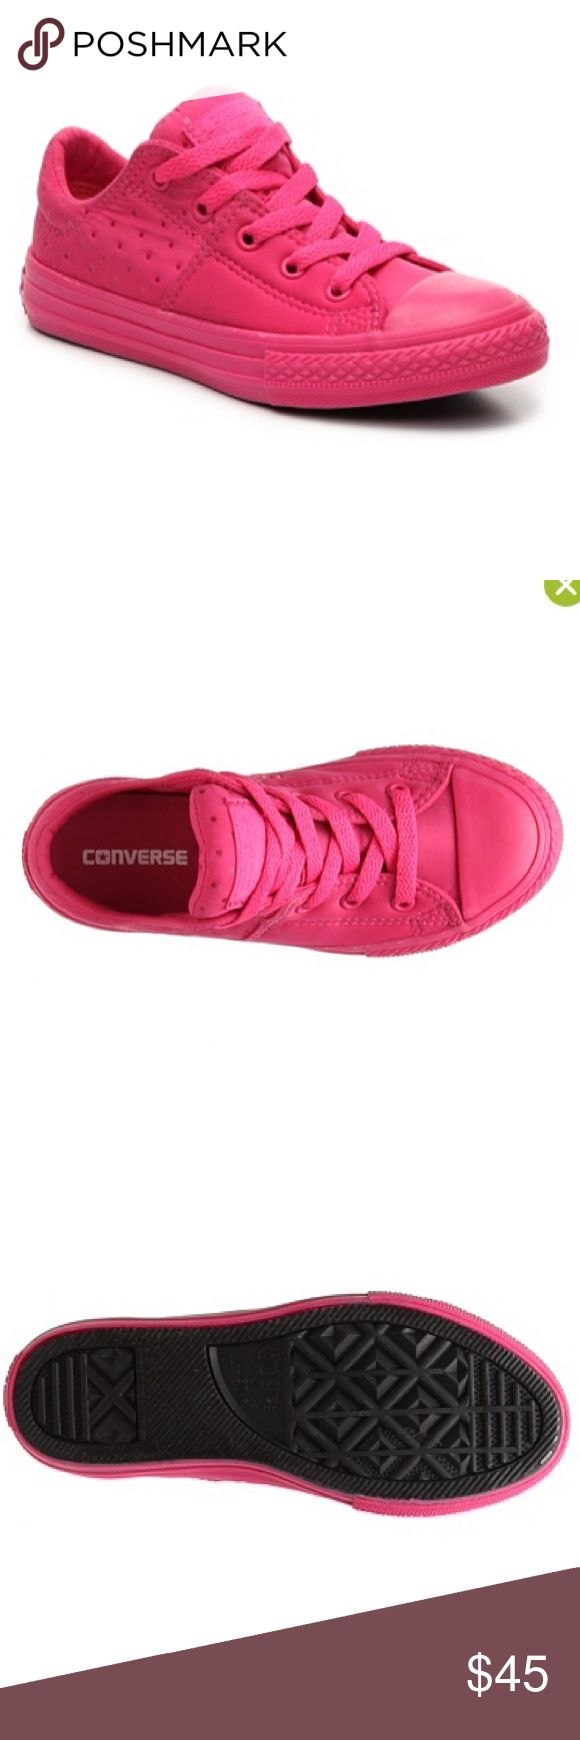 ⌚️️ONE HOUR SALE Converse pink size 6 Madison OX Brand new. Size 6. Color pink. Madison OX Converse Shoes Sneakers